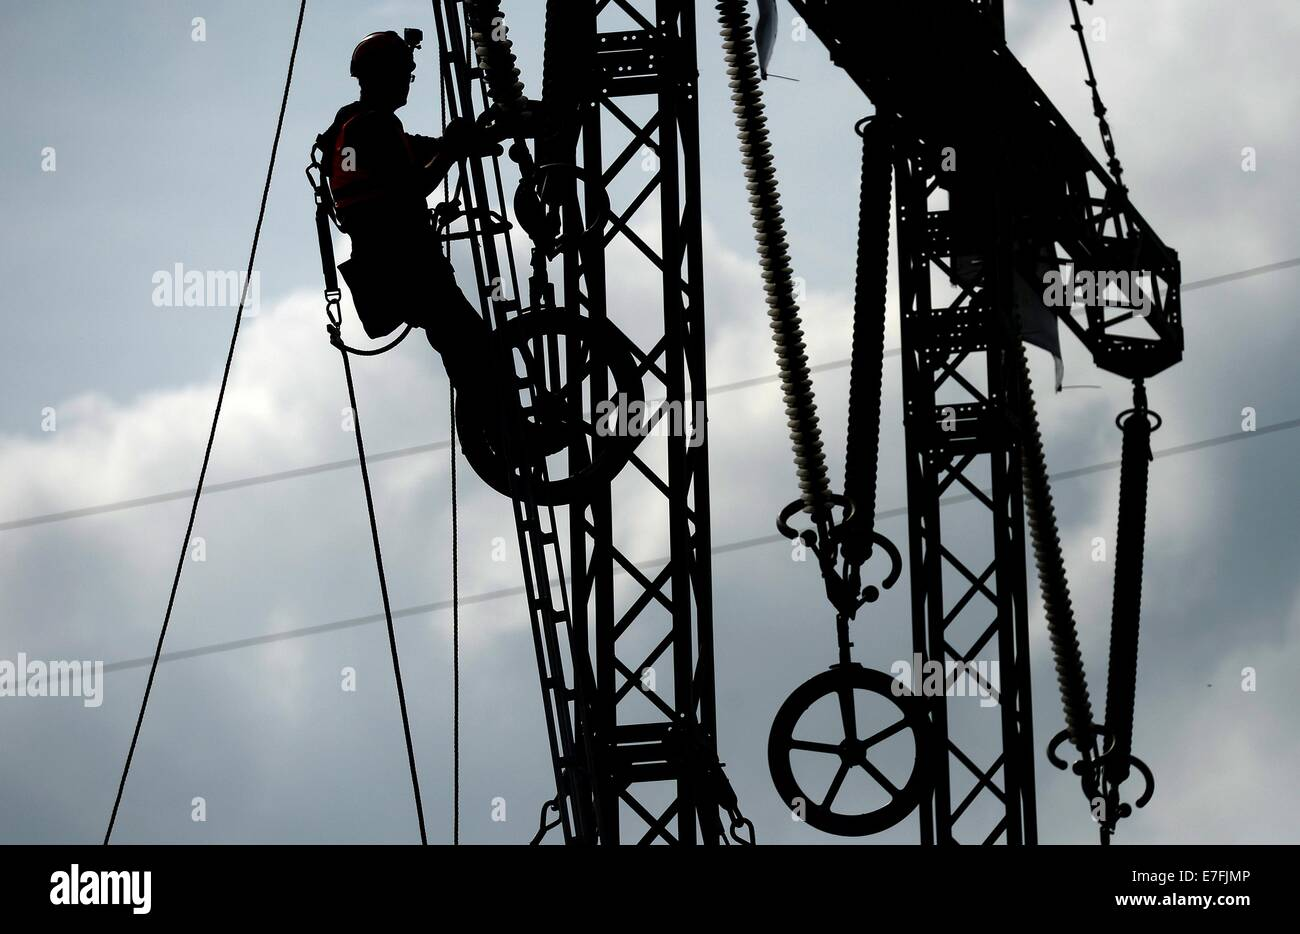 German and Czech firemen connect an emergency linkage duing an complex emergency exercise in an electricity power - Stock Image